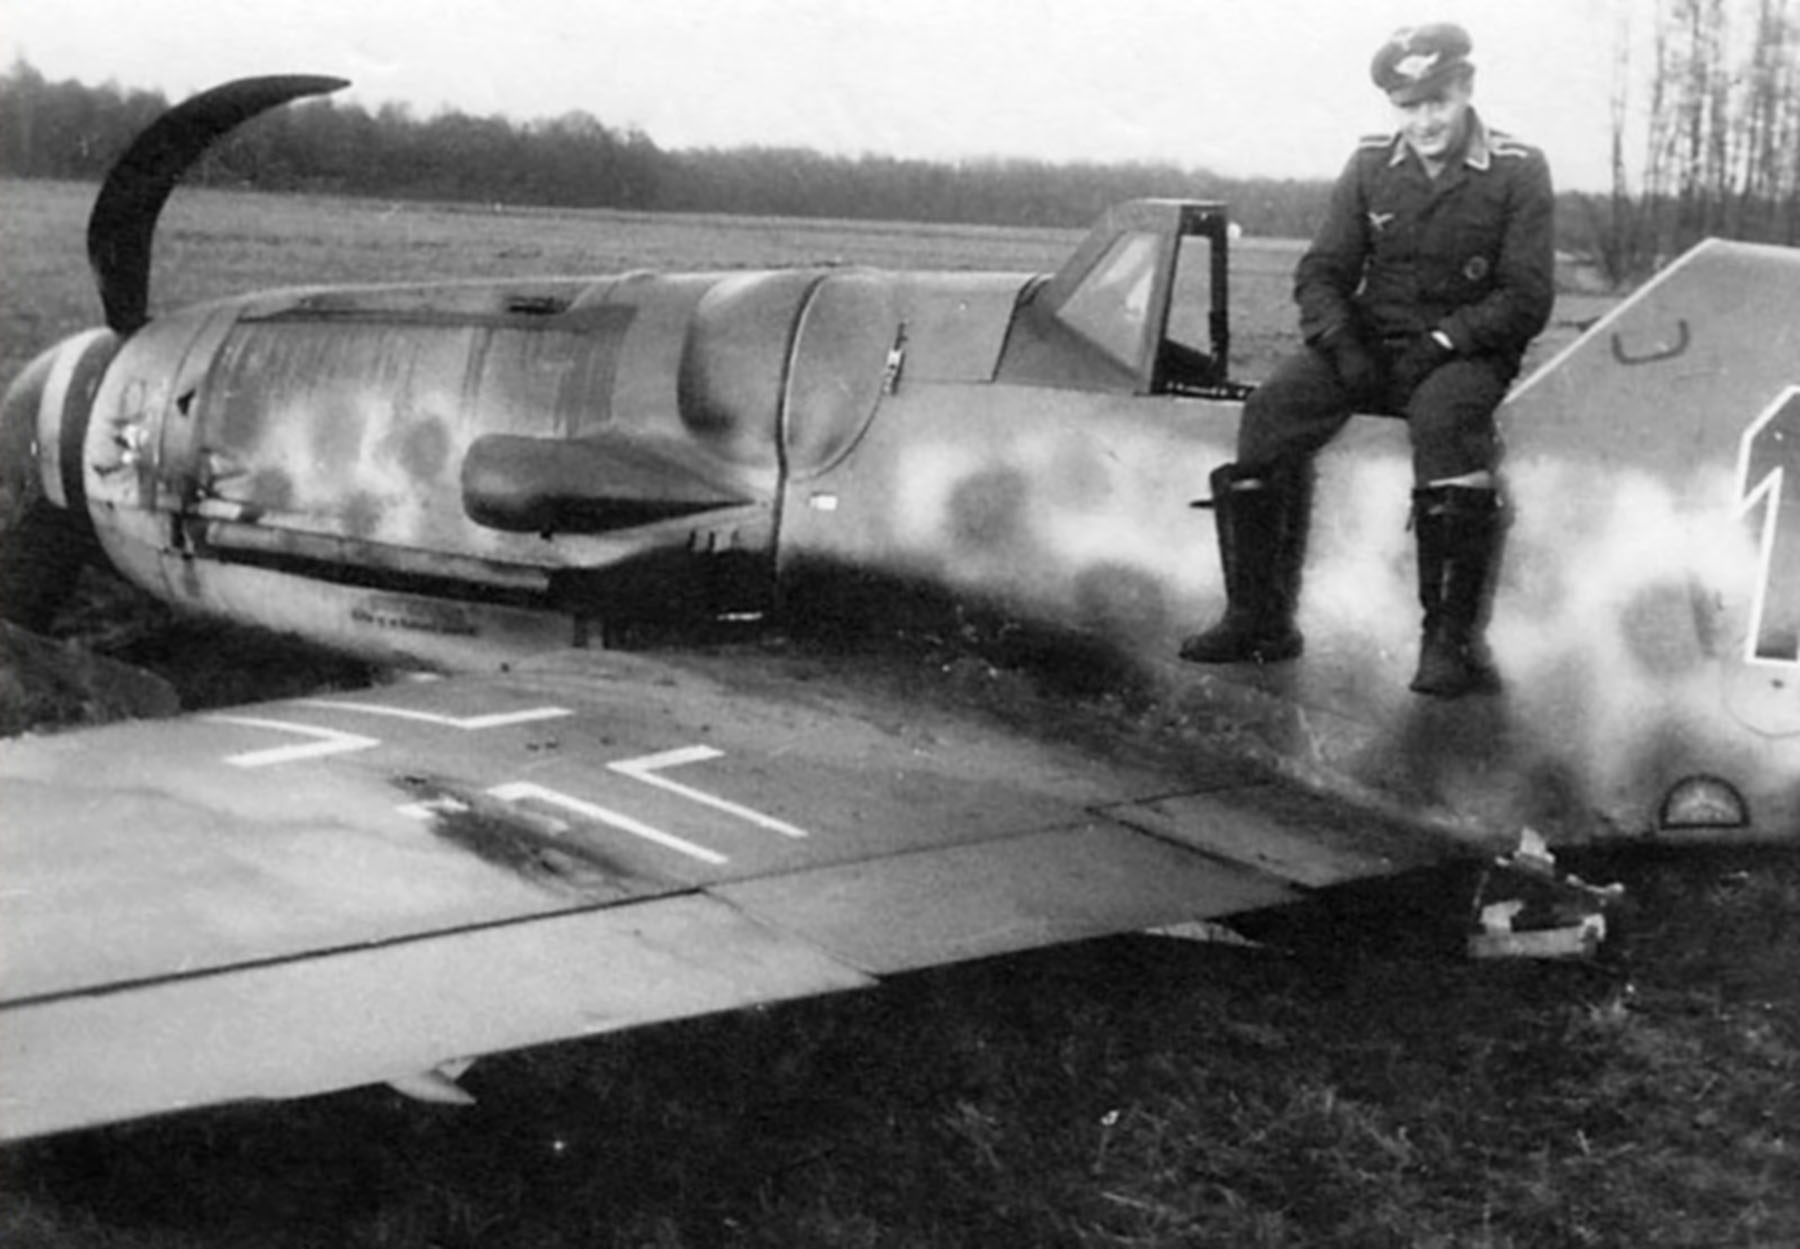 Aircrew Luftwaffe RVT pilot unknown unit with his force landed Bf 109G6 Erla Black 1 01